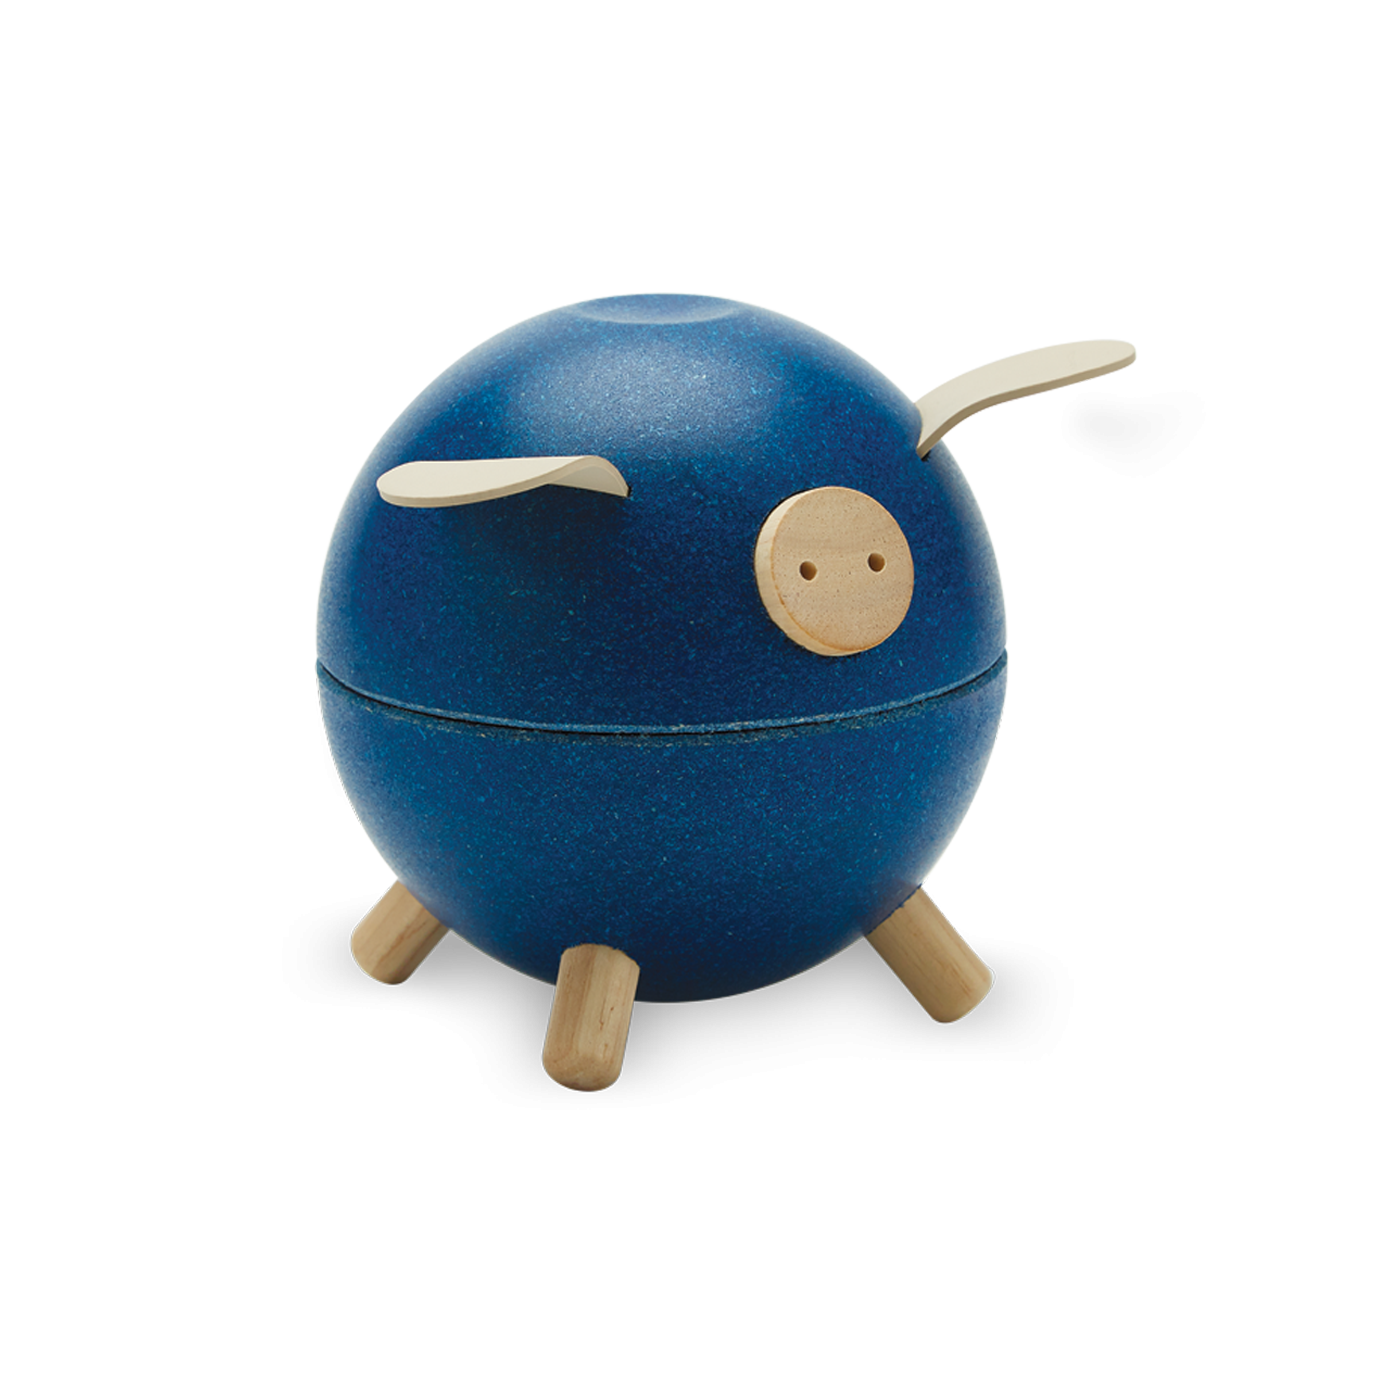 8709_PlanToys_Piggy_Bank_-_Blue_-_Orchard_PlanHome™_Fine_Motor_Emotion_Language_and_Communications_Social_Logical_Mathematical_Wooden_toys_Education_toys_Safety_Toys_Non-toxic_0.png